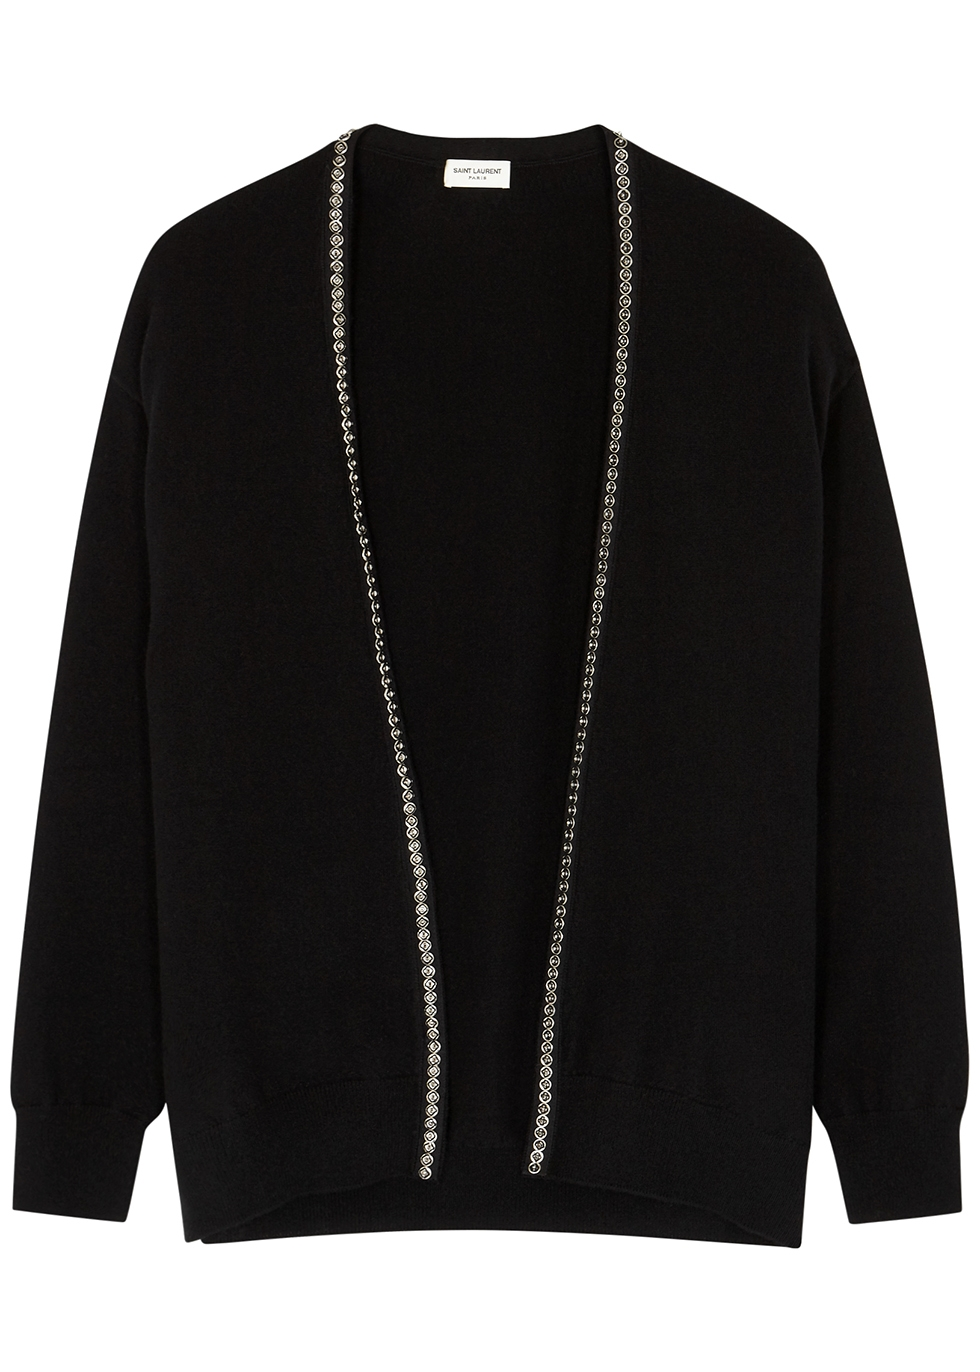 Black embellished cashmere cardigan